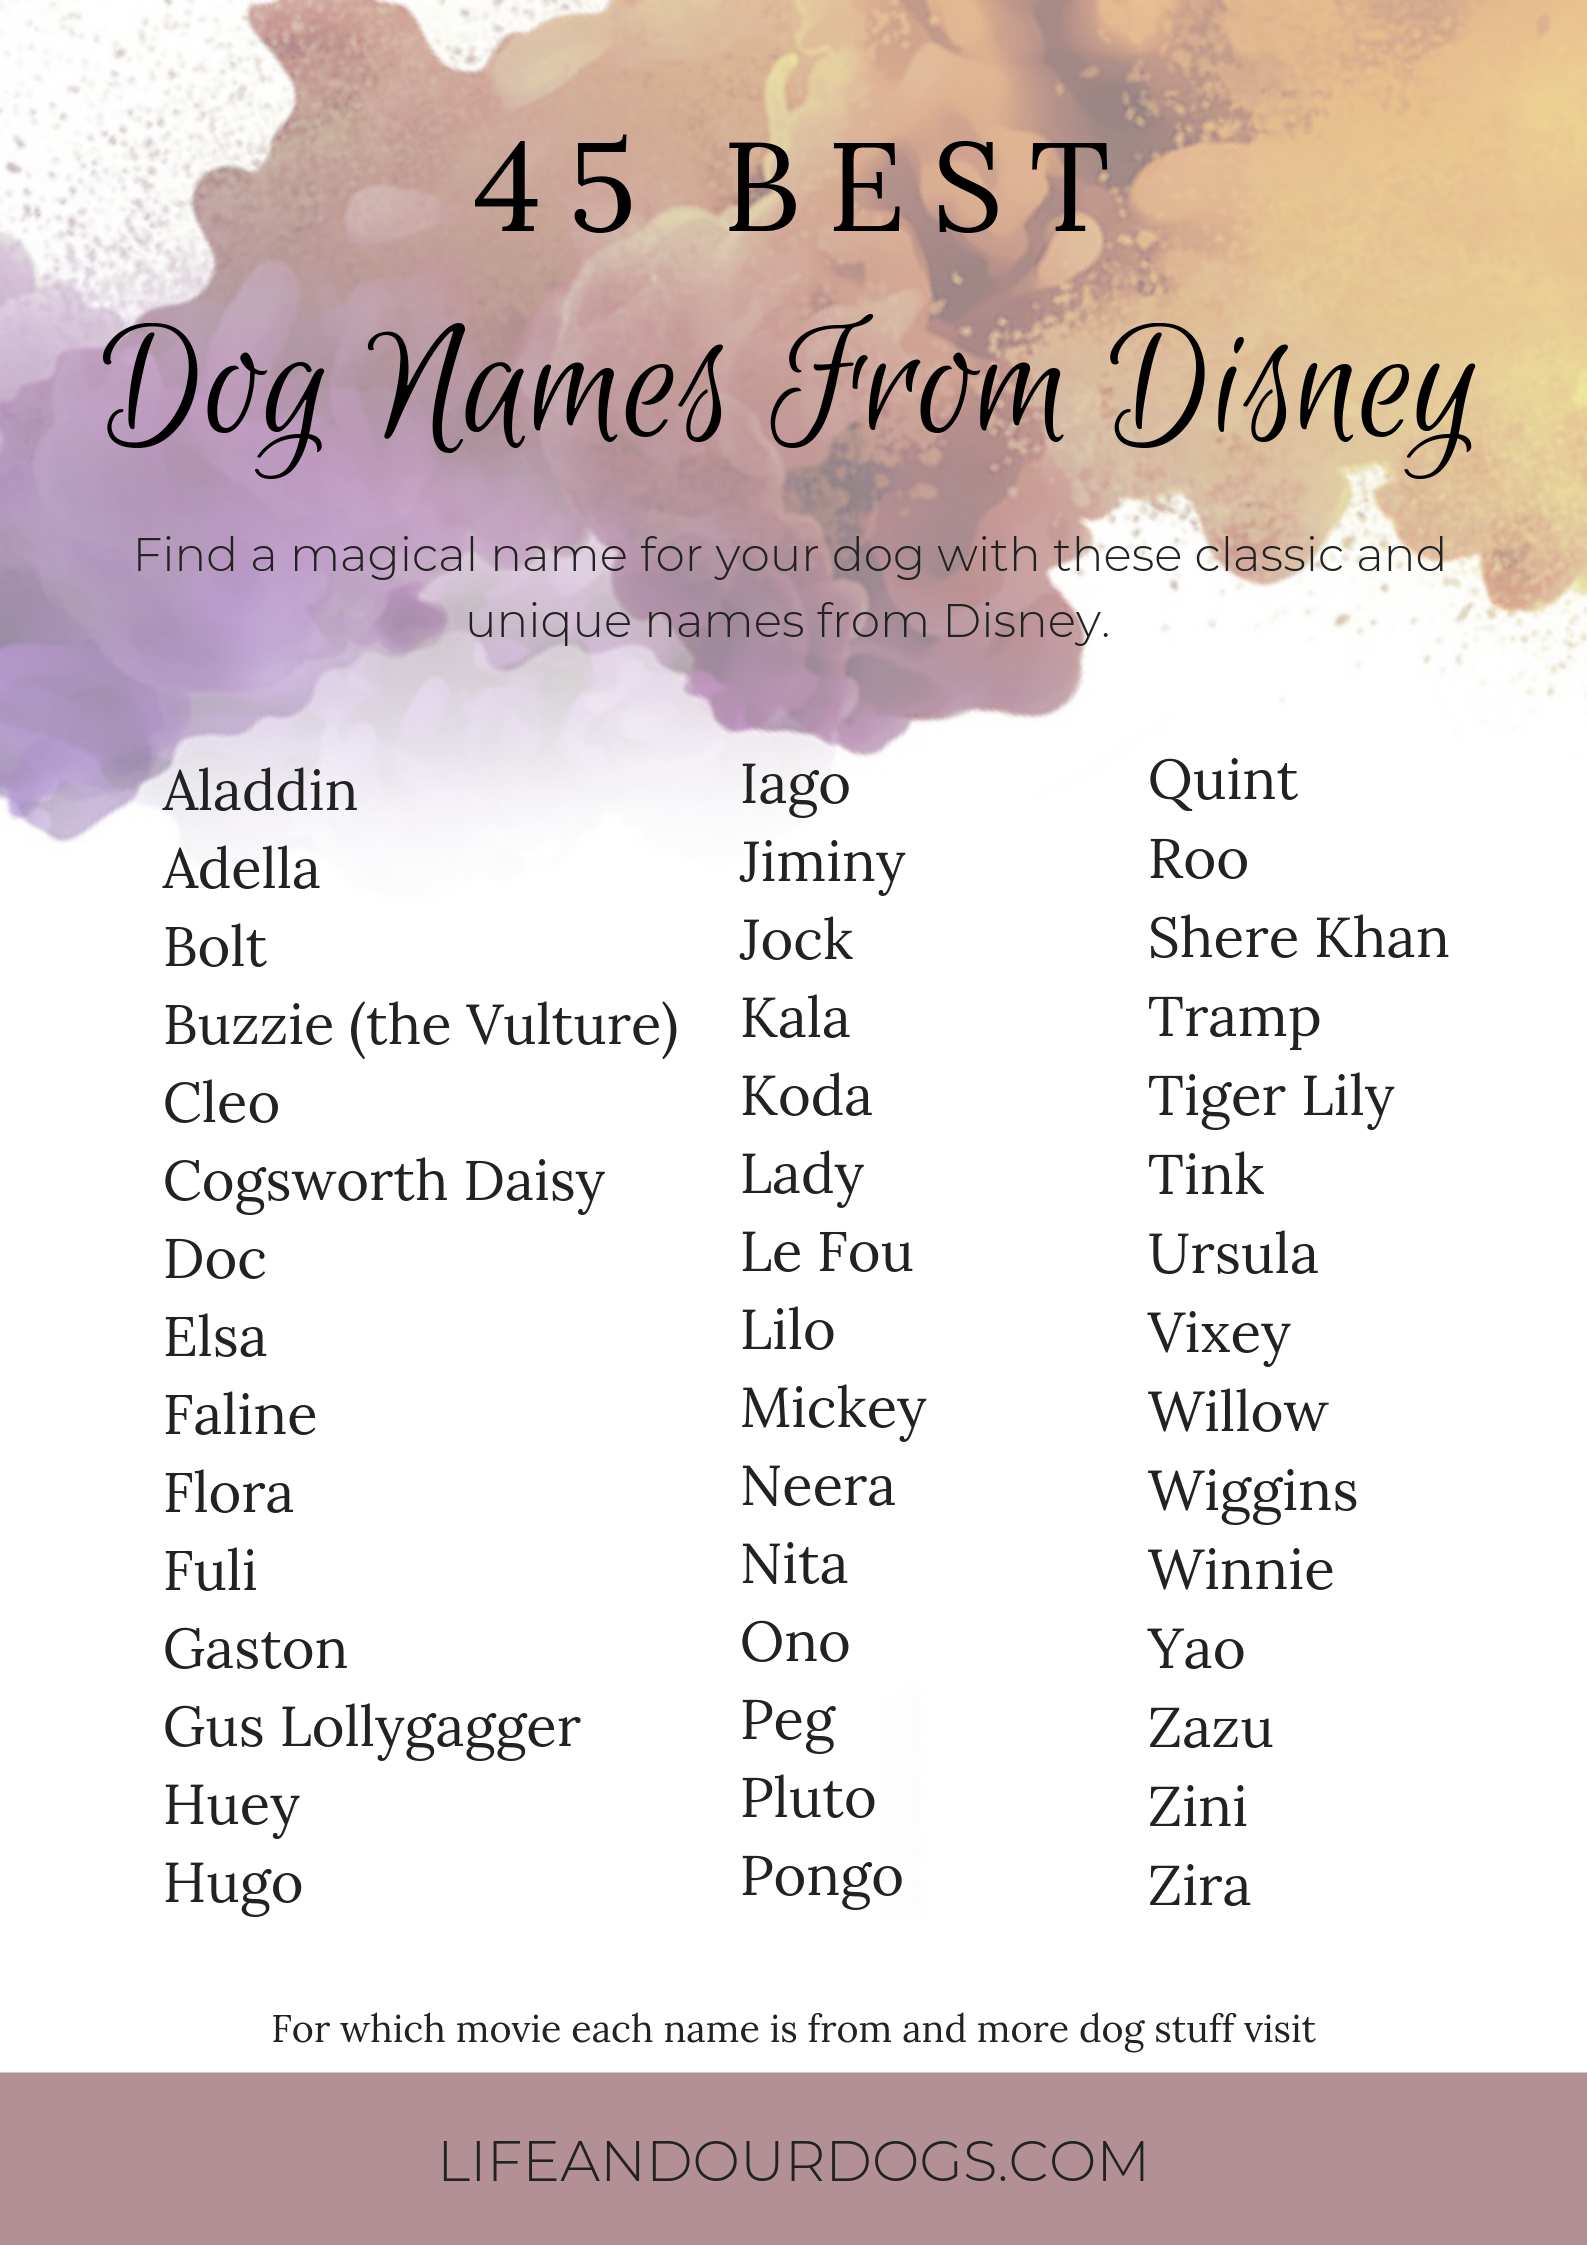 45 Dog Names From Disney You Ll Surely Find A Classic And Fun Name To Call Your Dog Dog Names Dog Mom Gifts Dog Mom Quotes